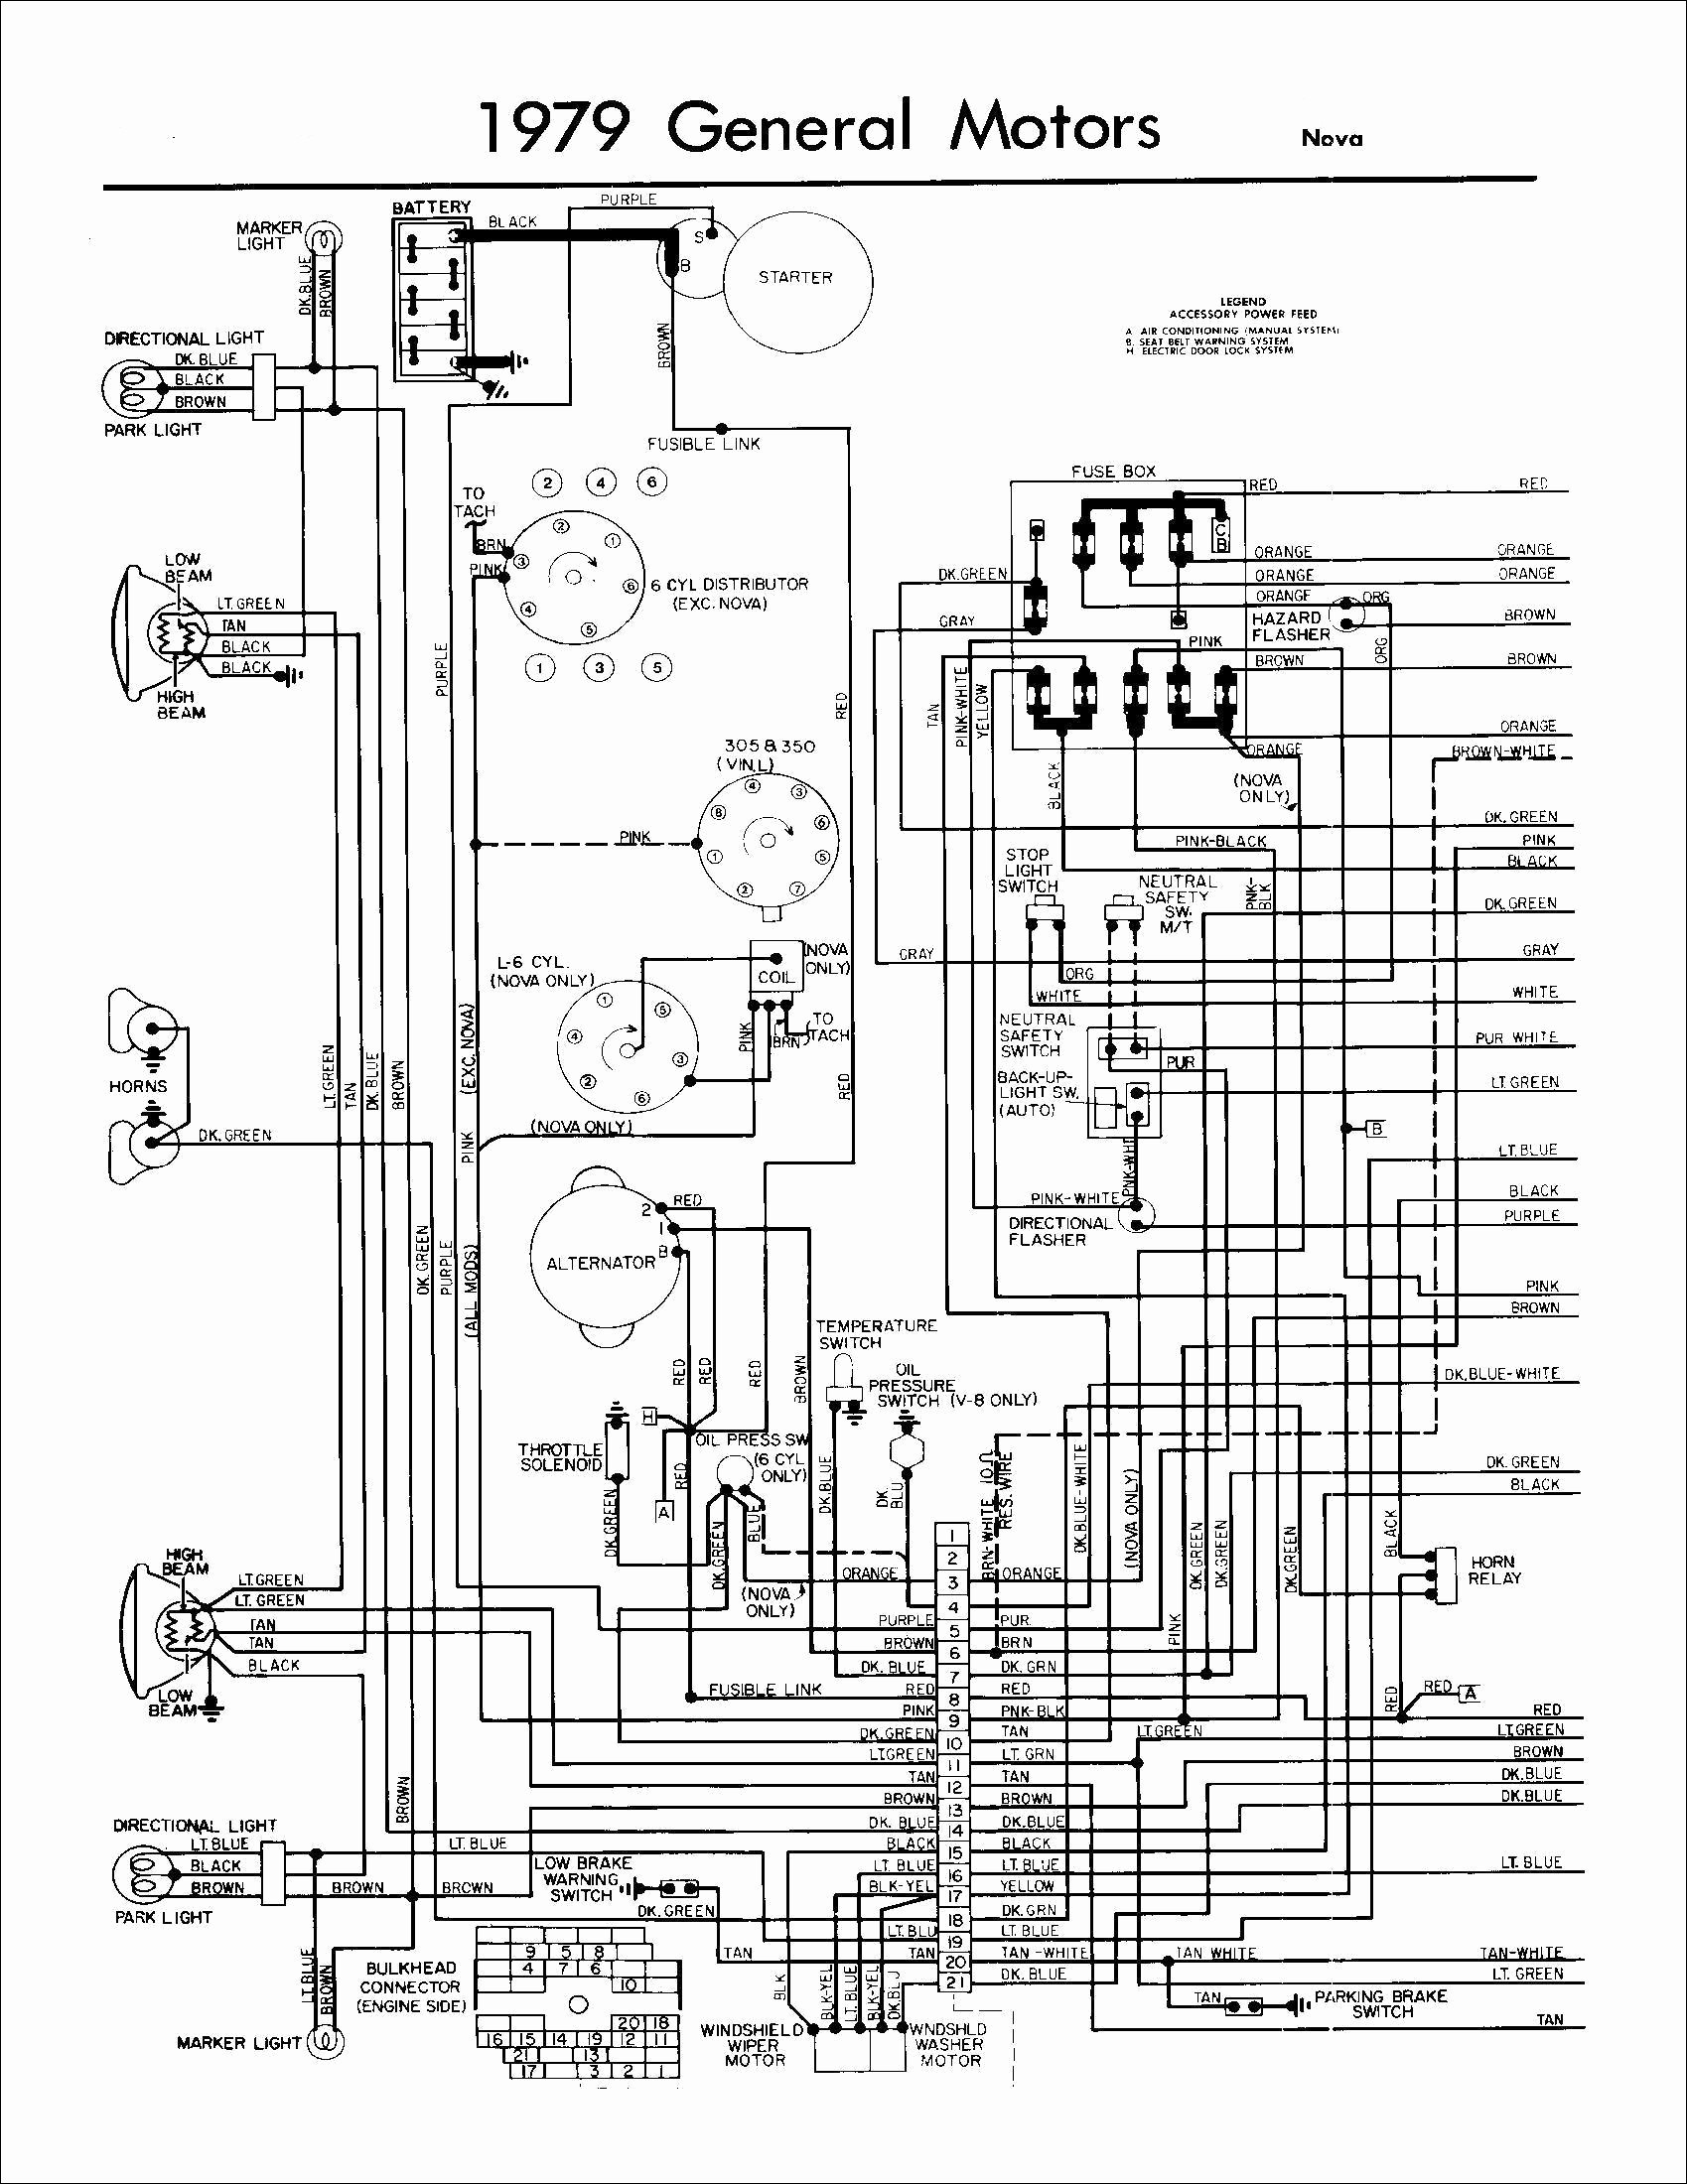 1975 dodge truck wiring diagram best of